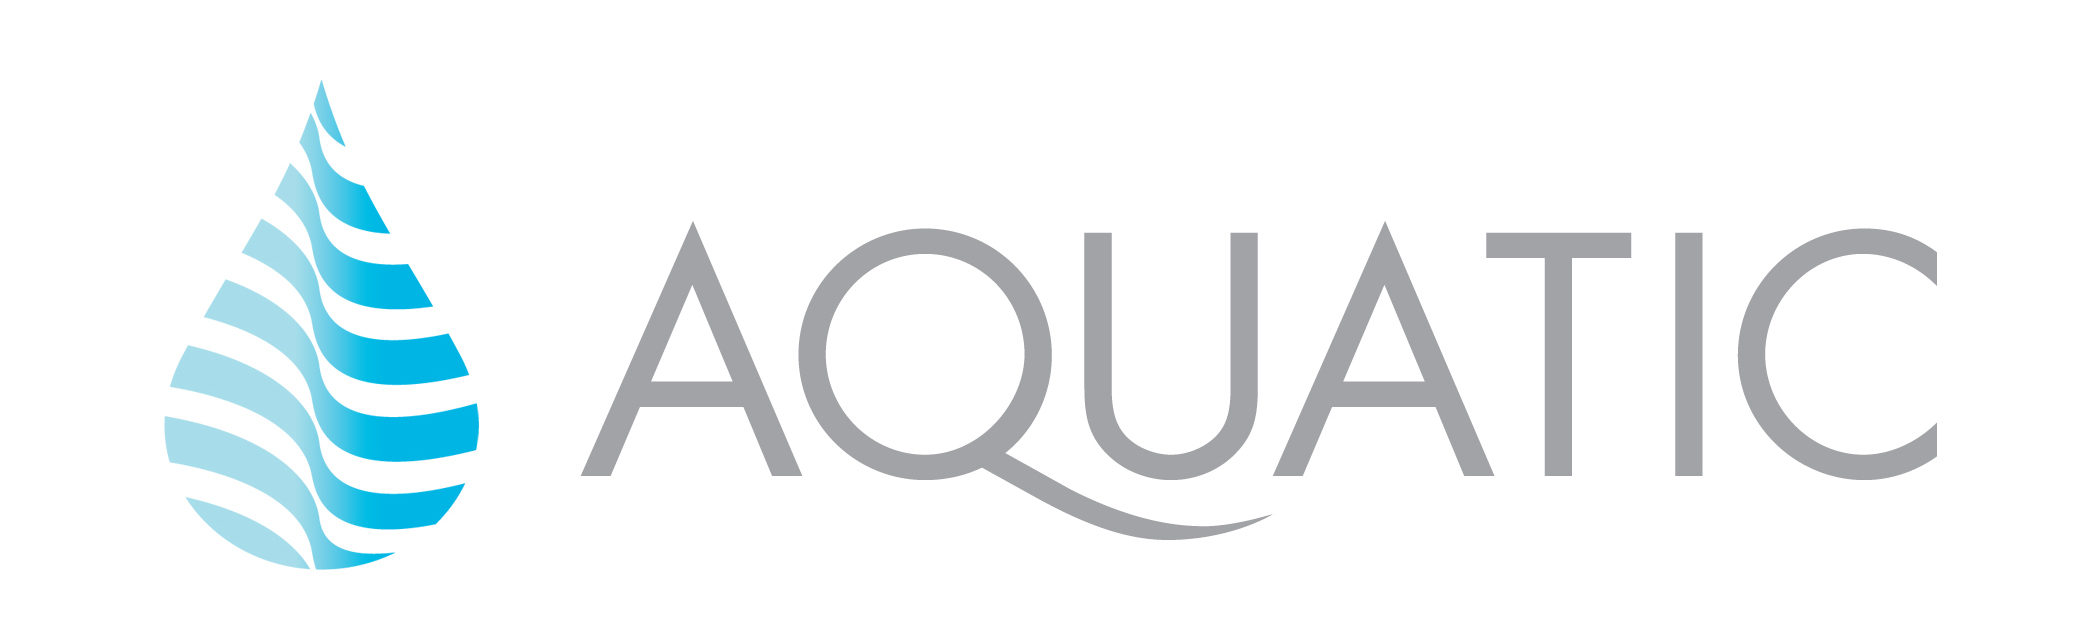 Aquatic Brands Company Case Study